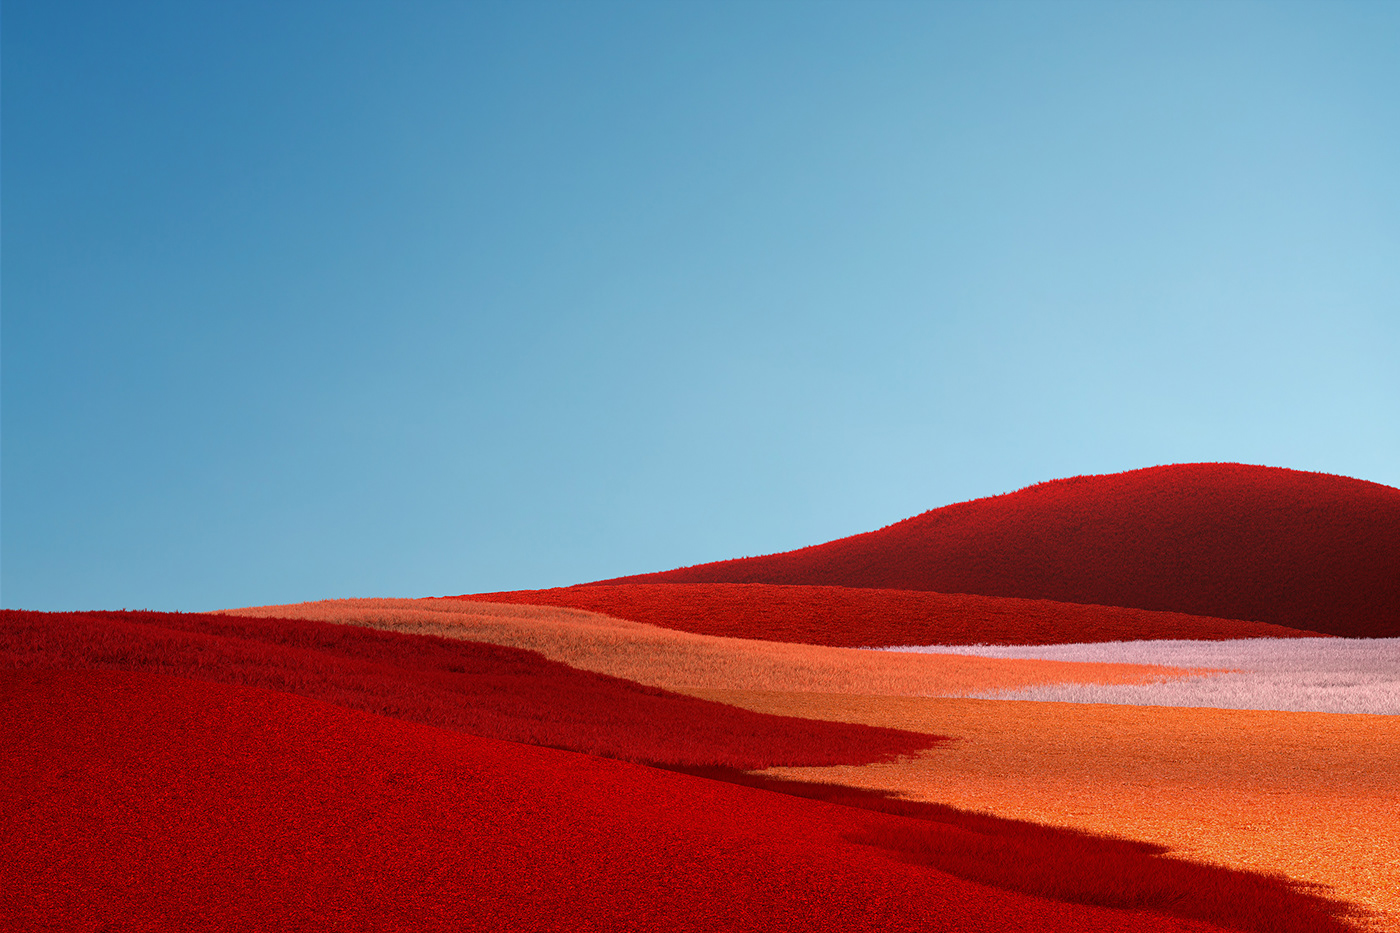 Microsoft Surface Wallpapers On Behance